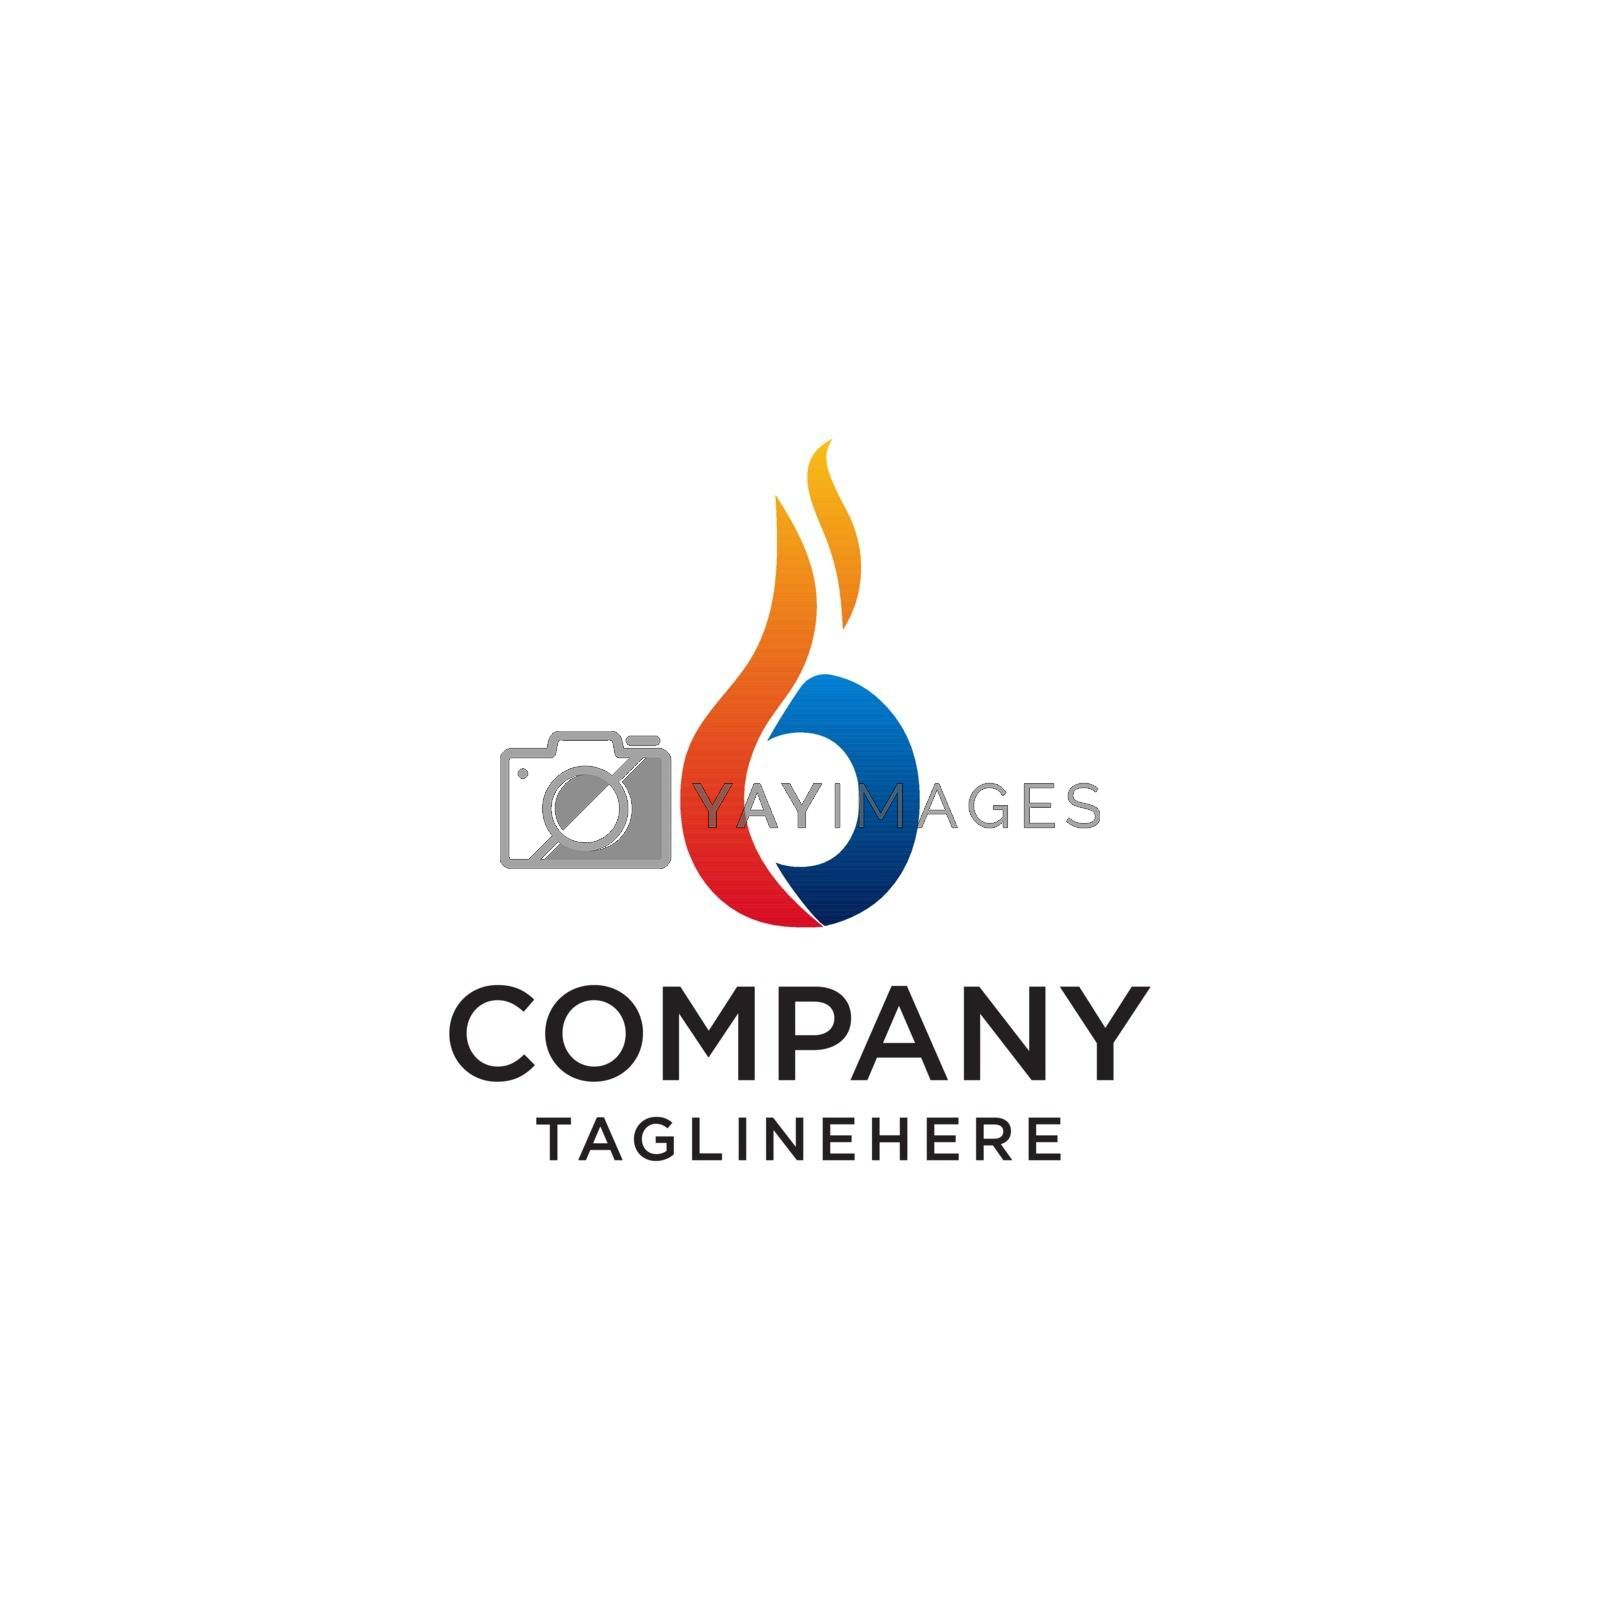 initial Letter Ofire logo design. fire company logos, oil companies, mining companies, fire logos, marketing, corporate business logos. icon. vector